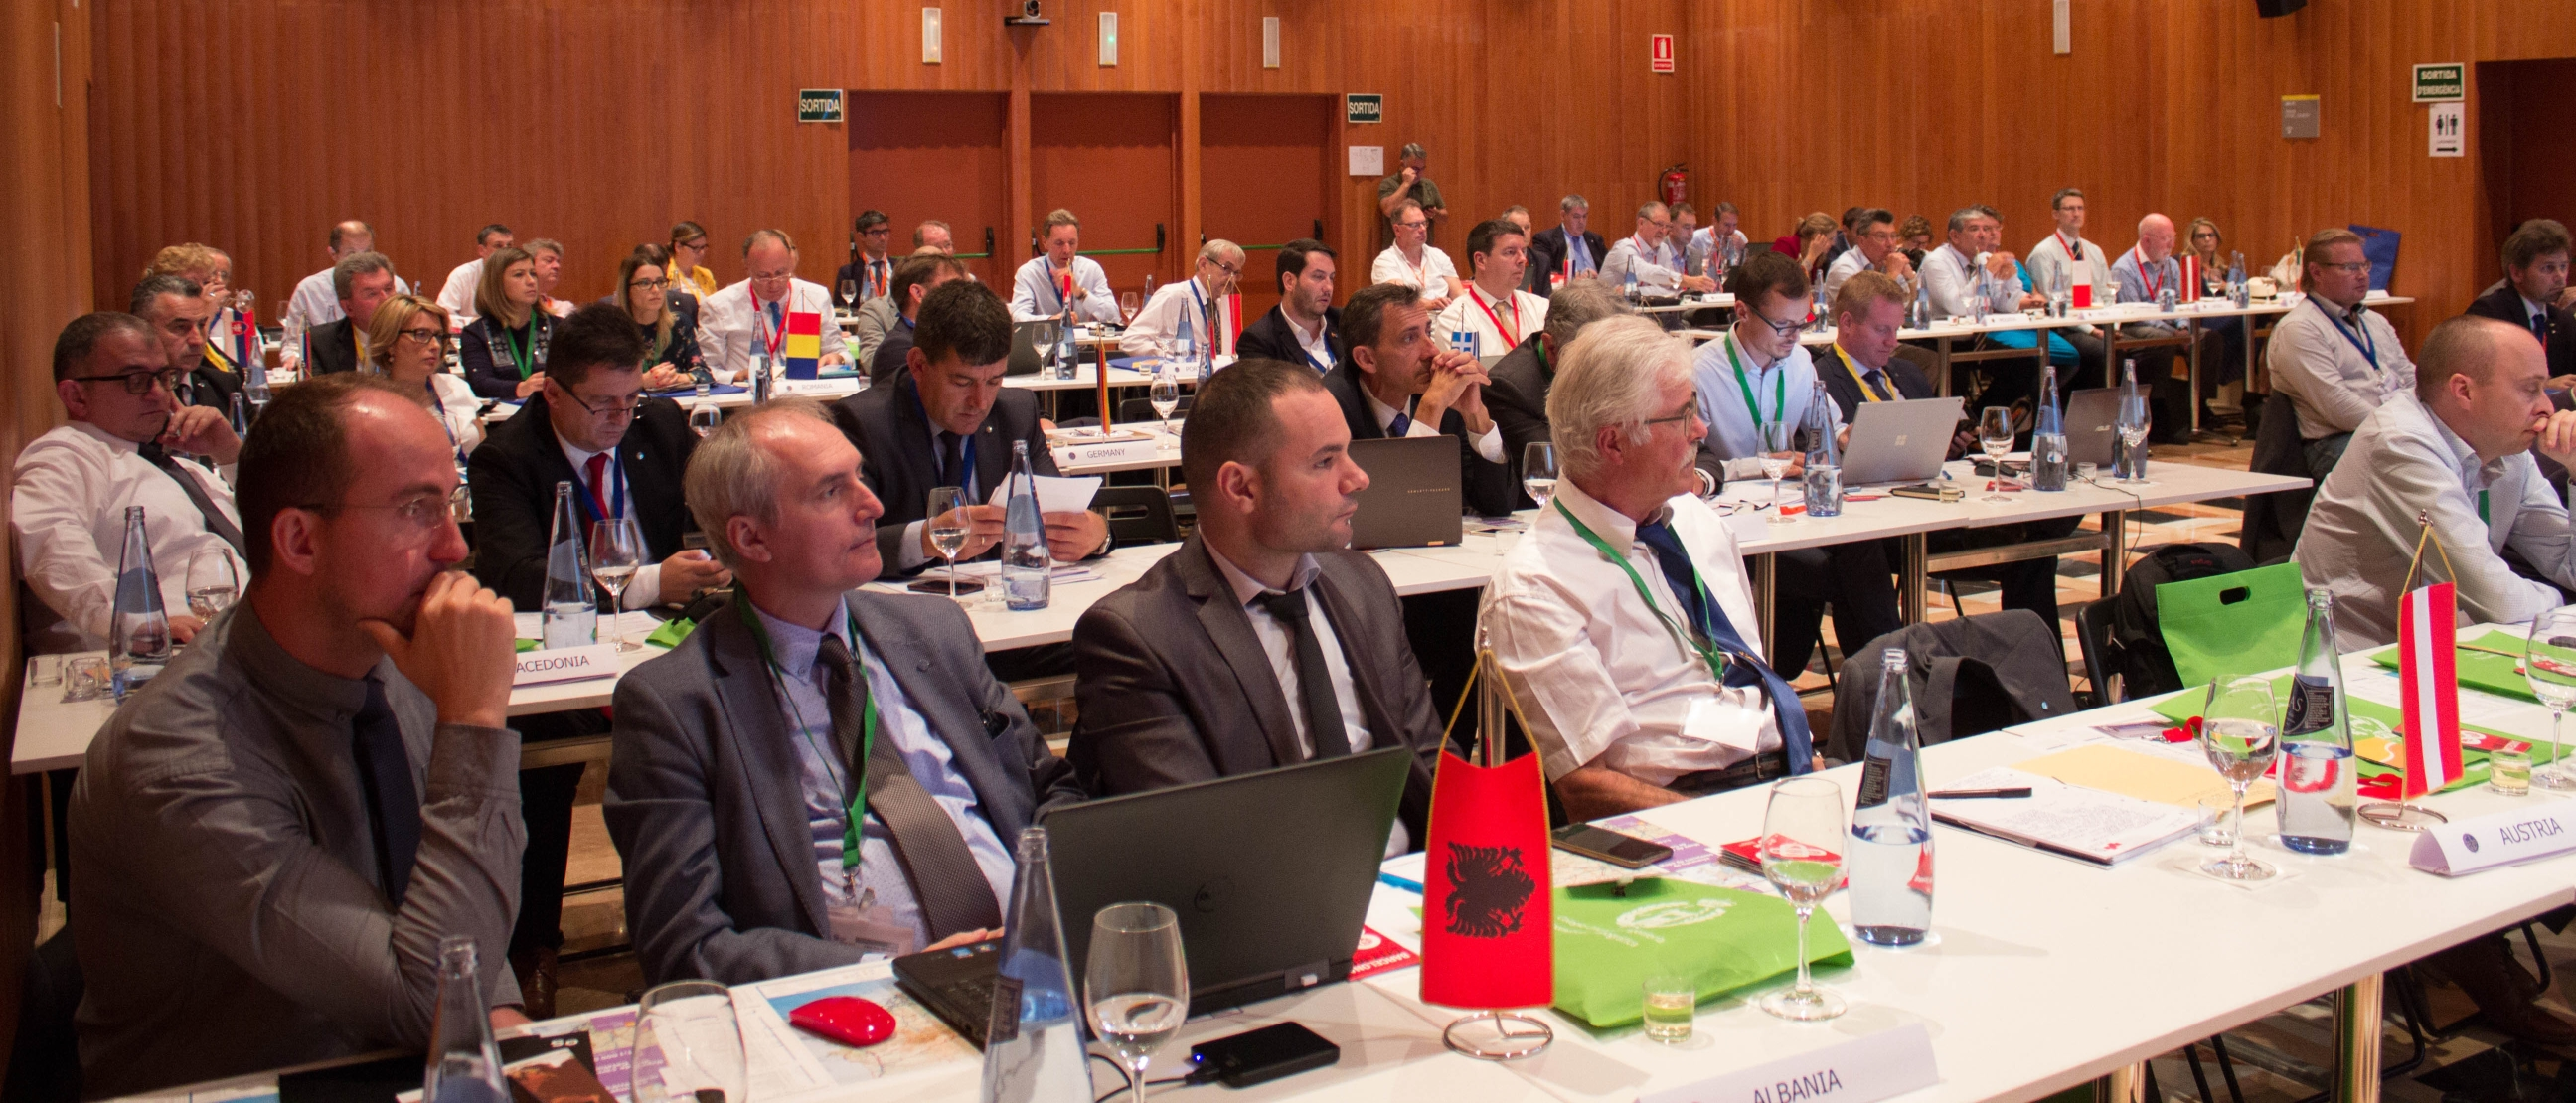 clge-general-assembly-barcelona-2018_44329726975_o.jpg